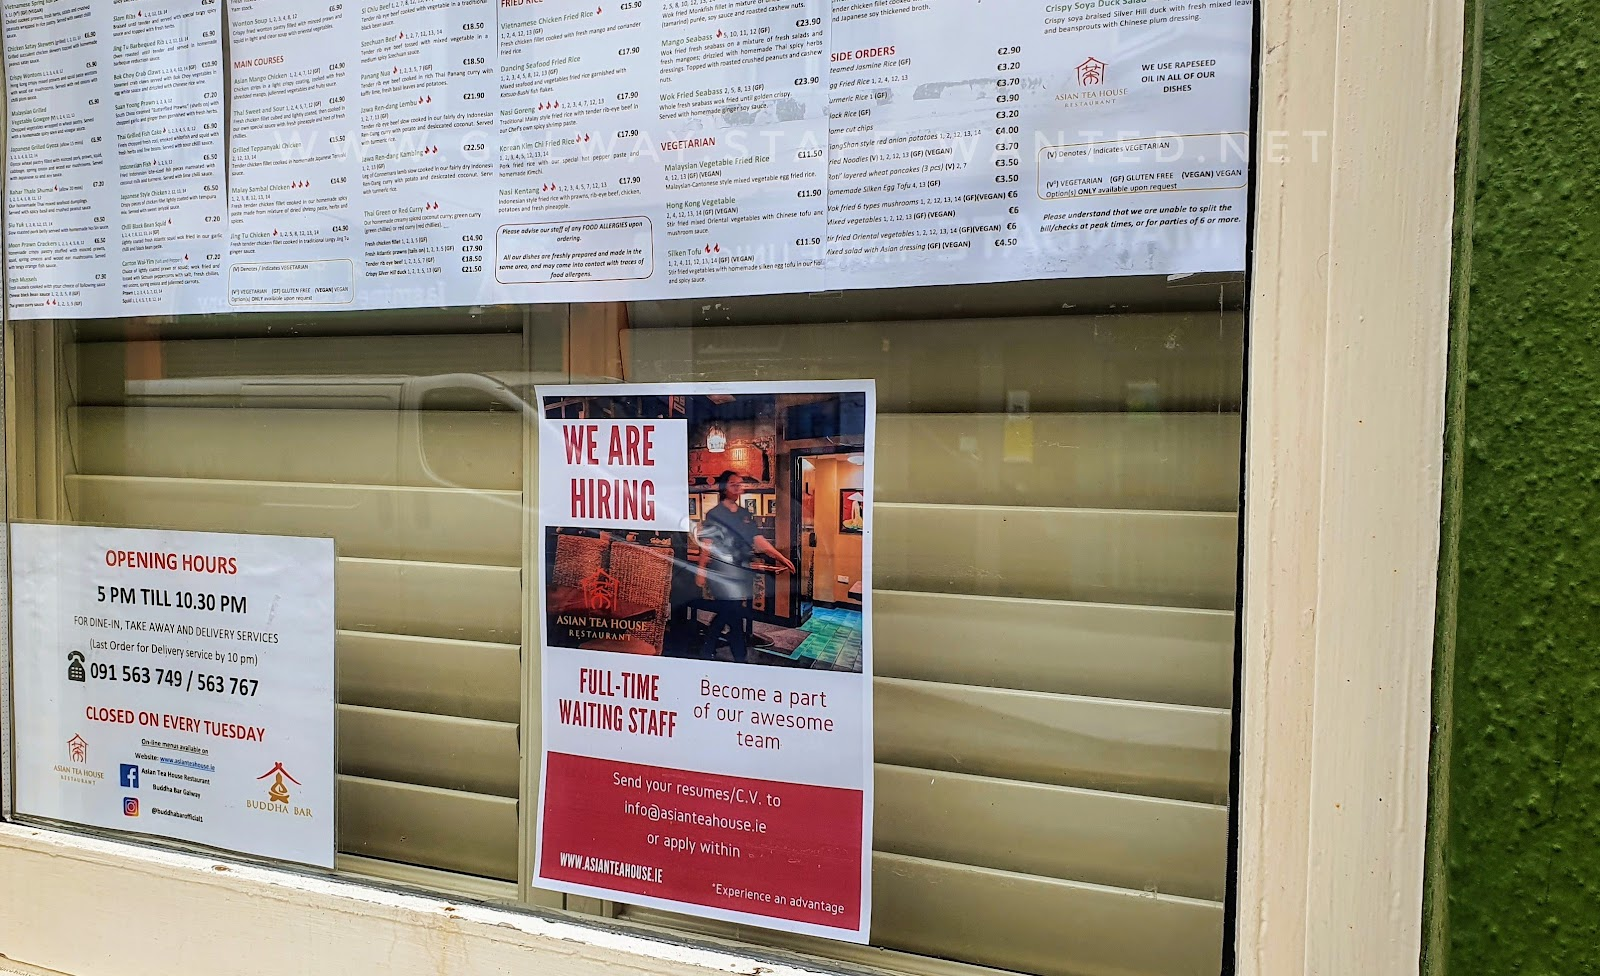 Asian Teahouse Galway pan-asia Restaurant window - with staff advertisement, opening hours sign - closed every Tuesday - and part of the menu showing.